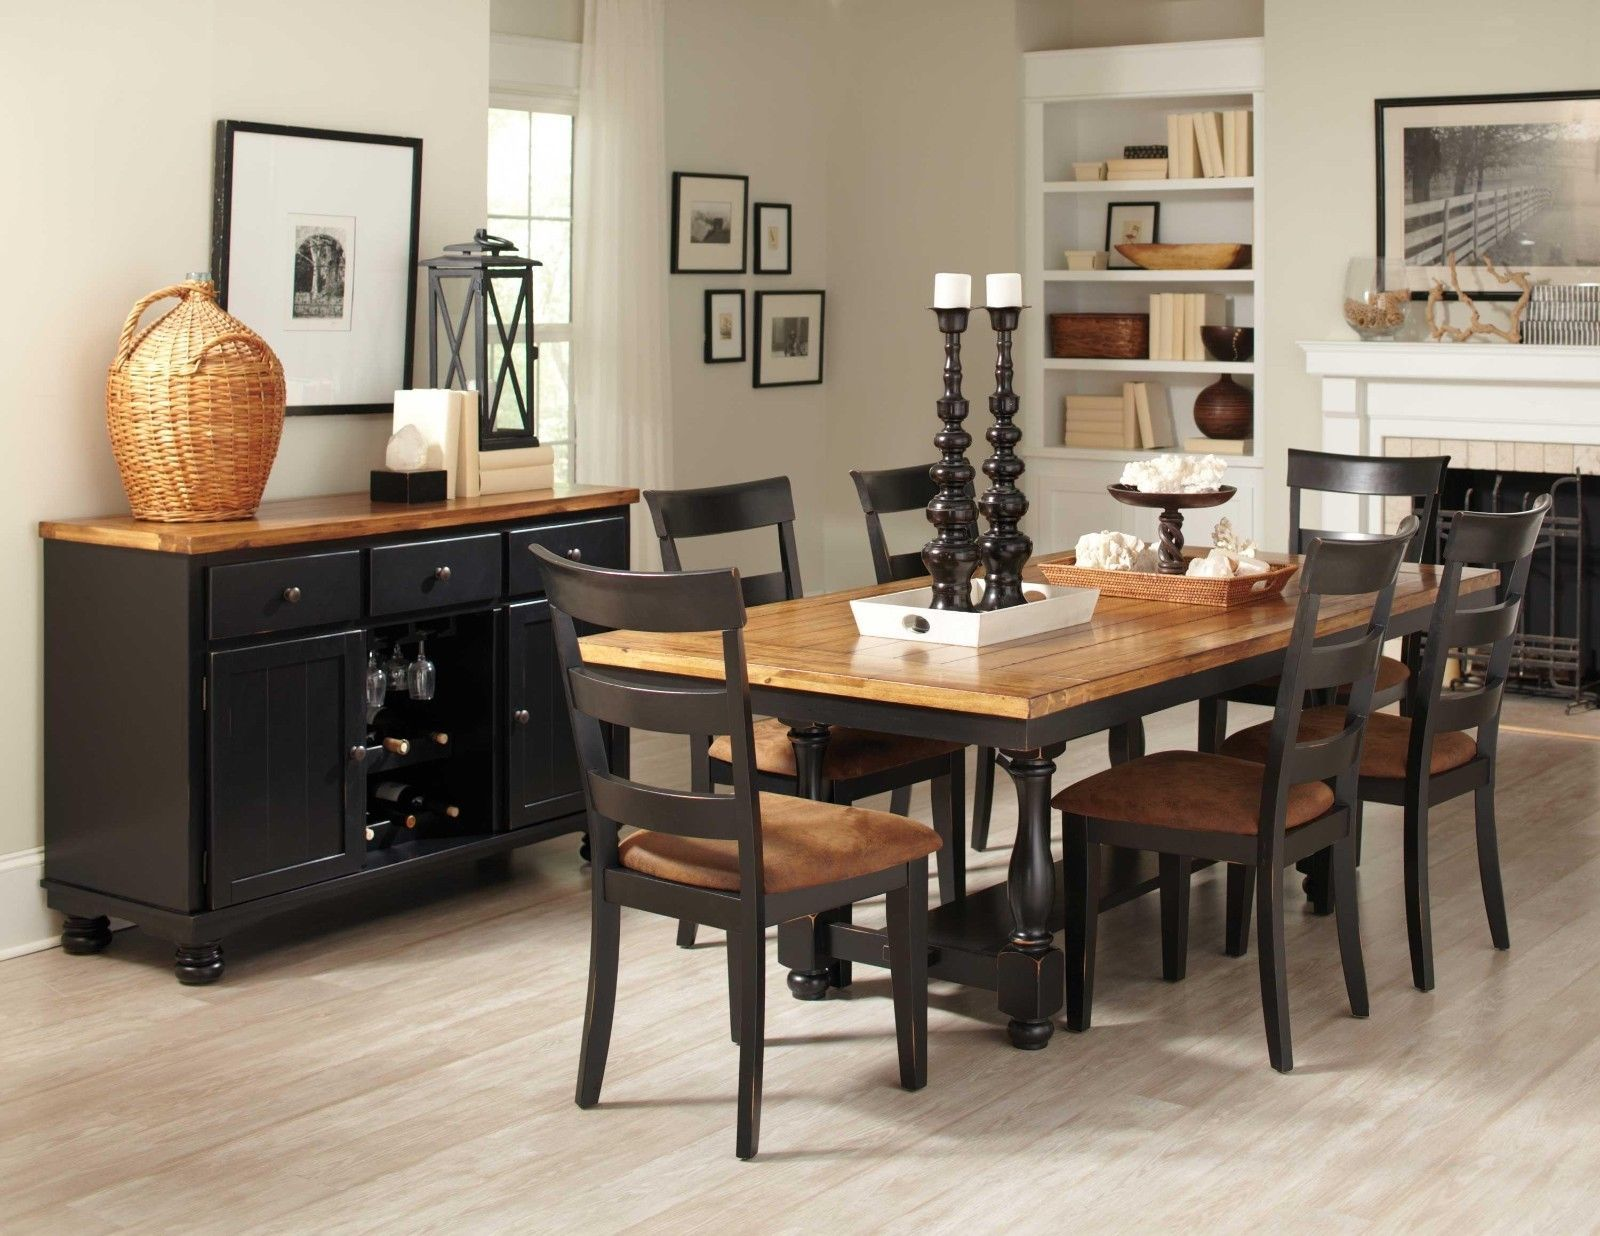 Black And Distressed Oak Dining Table Chairs Room Furniture Set Within